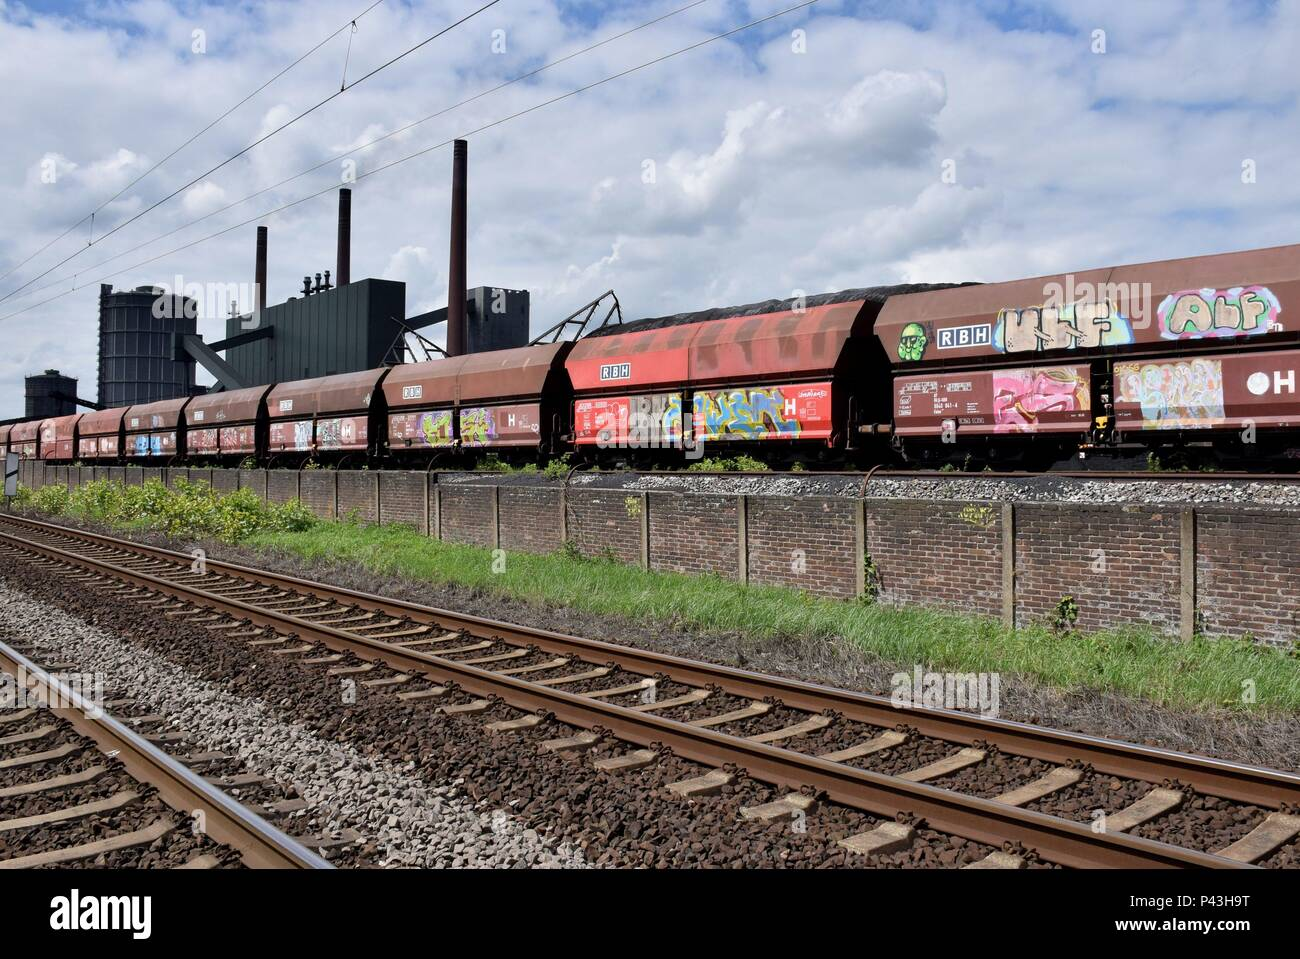 Graffiti on freight waggon for coal on 28.04.2018 in Bottrop - Germany. | usage worldwide - Stock Image